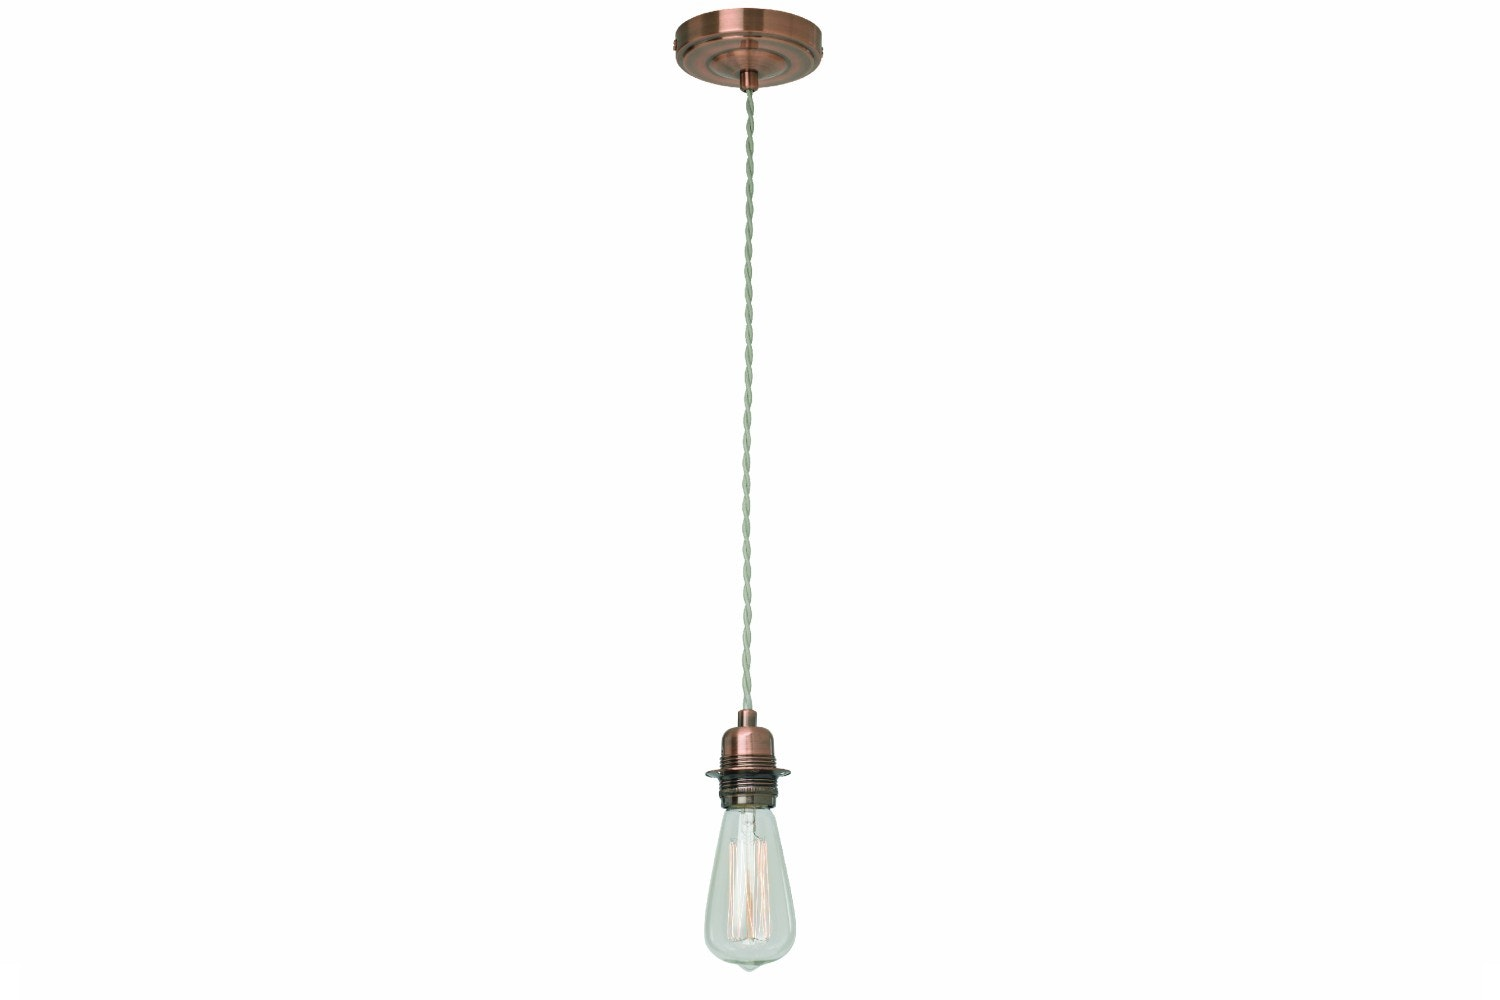 Brushed Copper Pendant Fitting Suspension Set